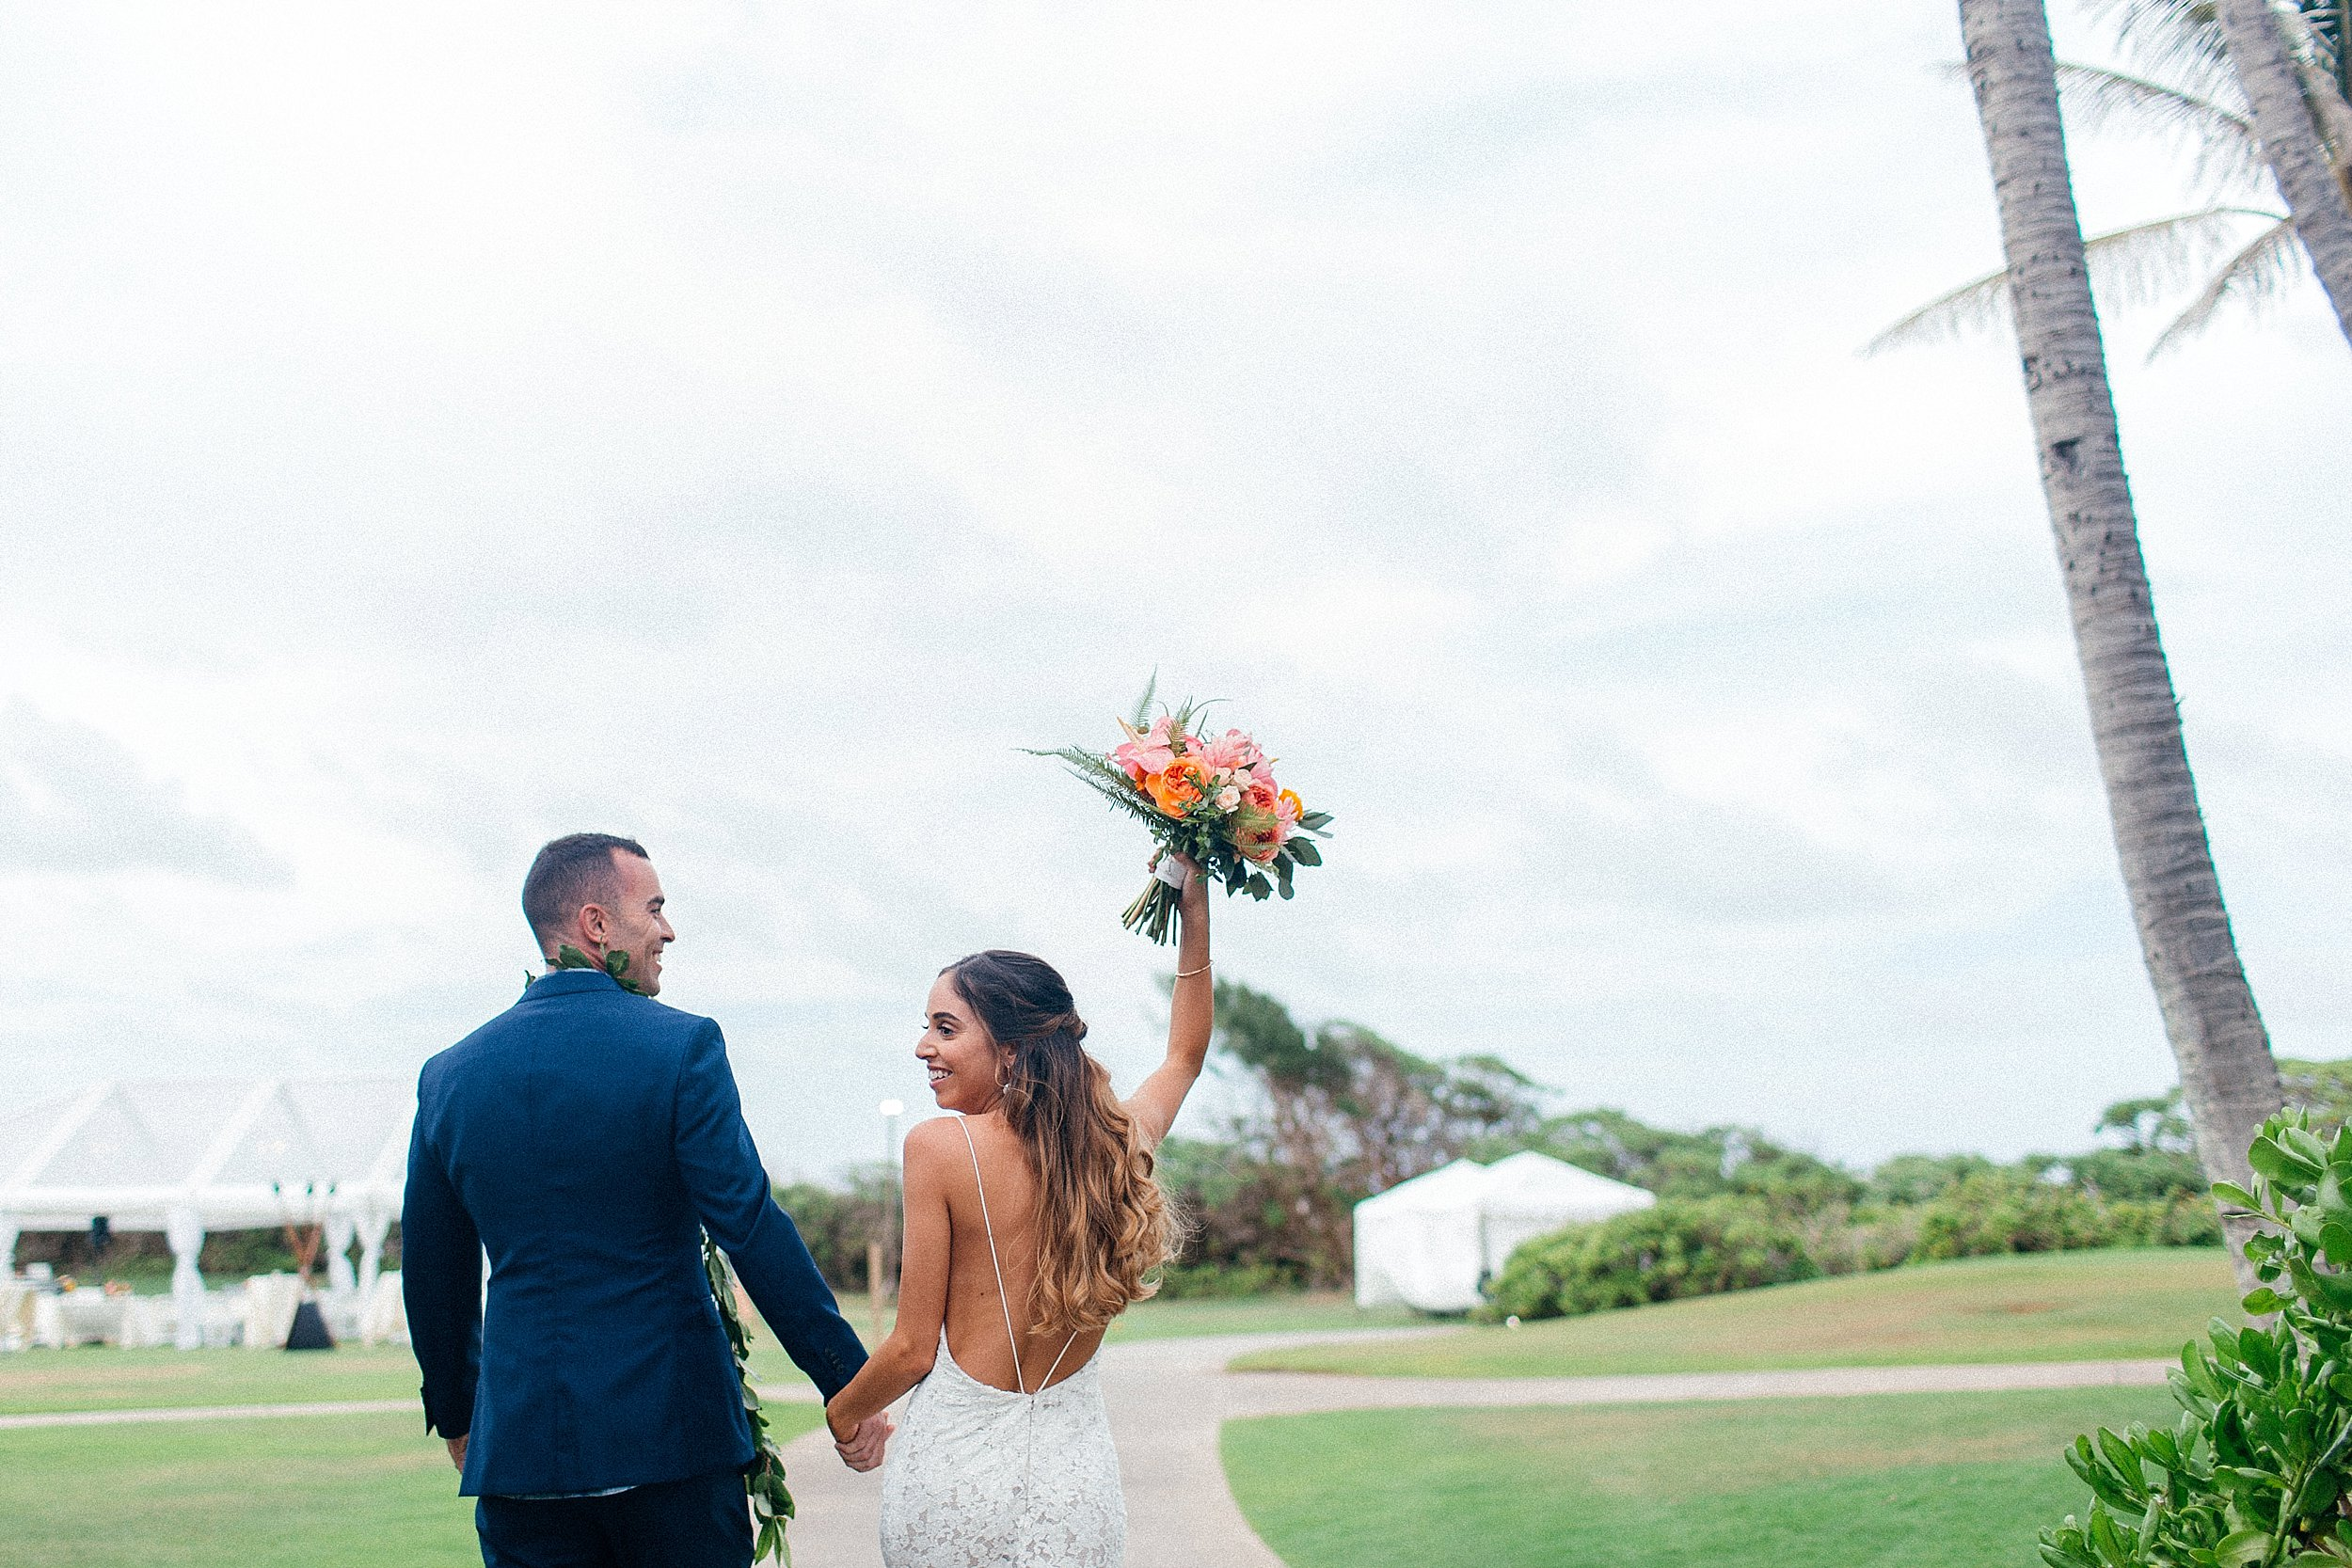 Nicole & Jim celebrating right after their ceremony at Turtle Bay Resort's little white chapel.